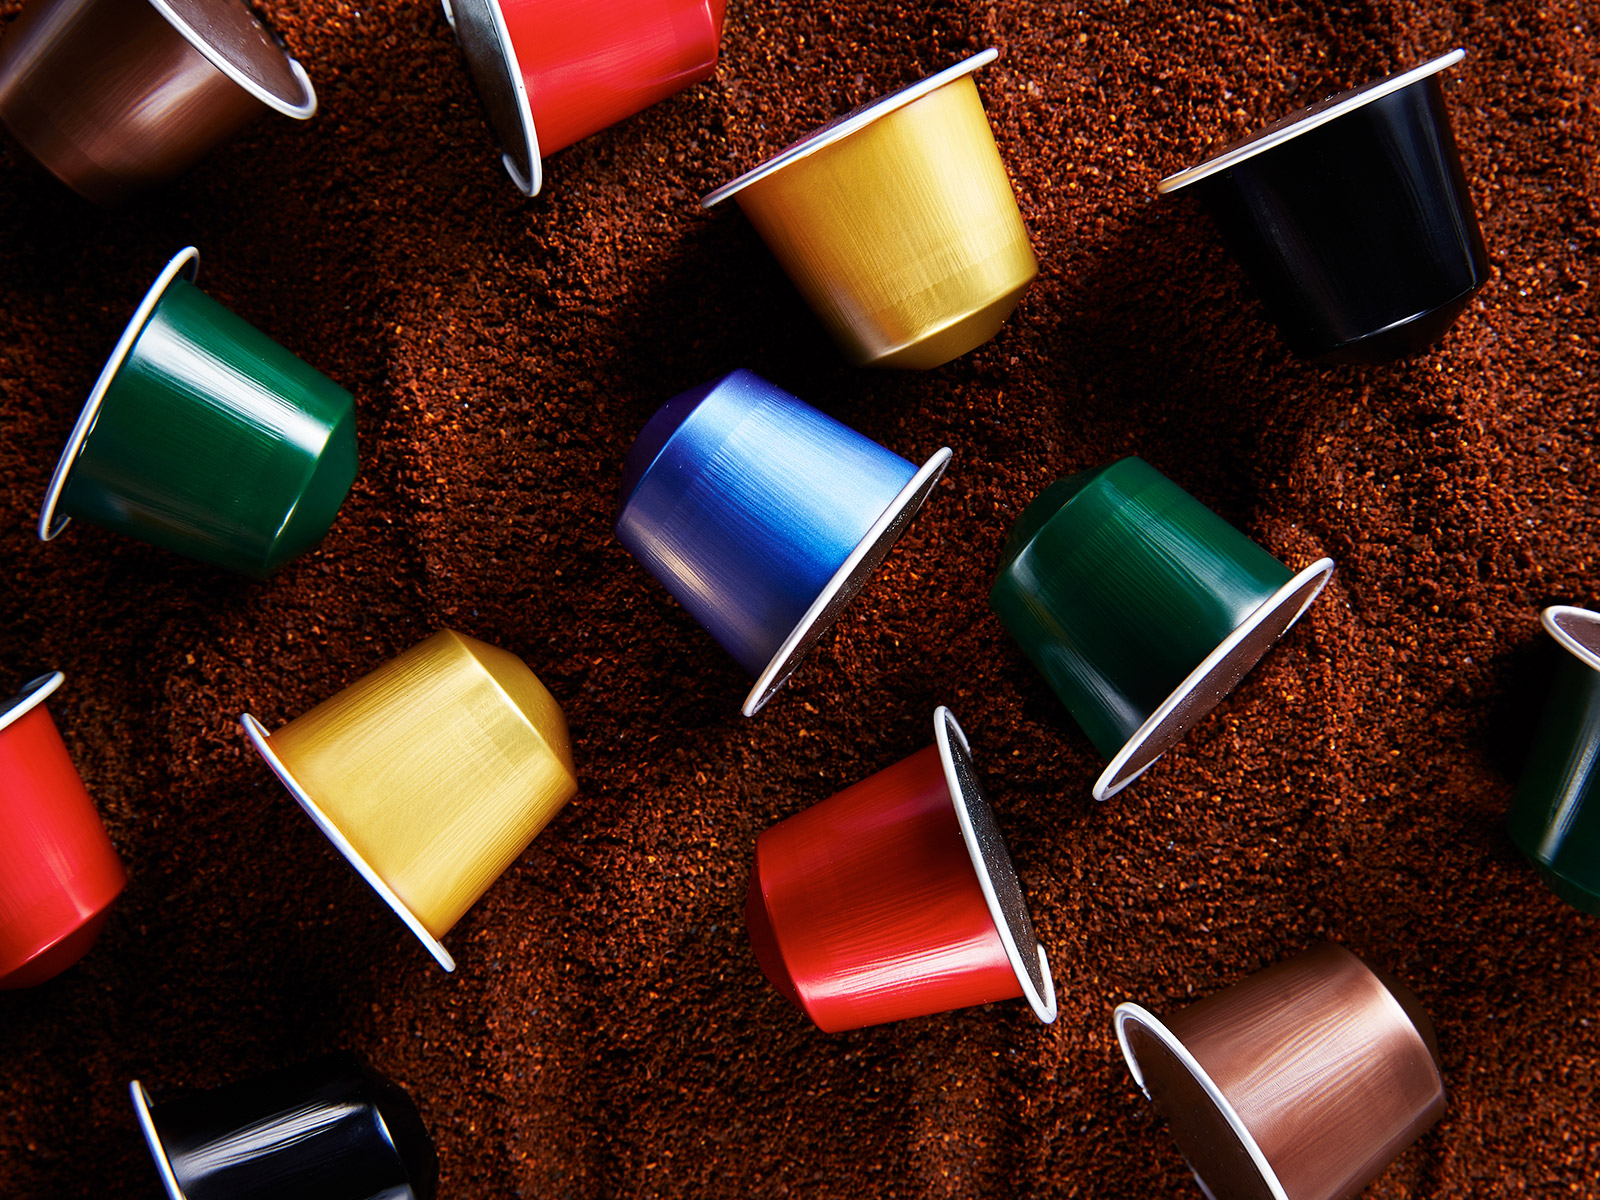 Colorful variety of coffee capsules